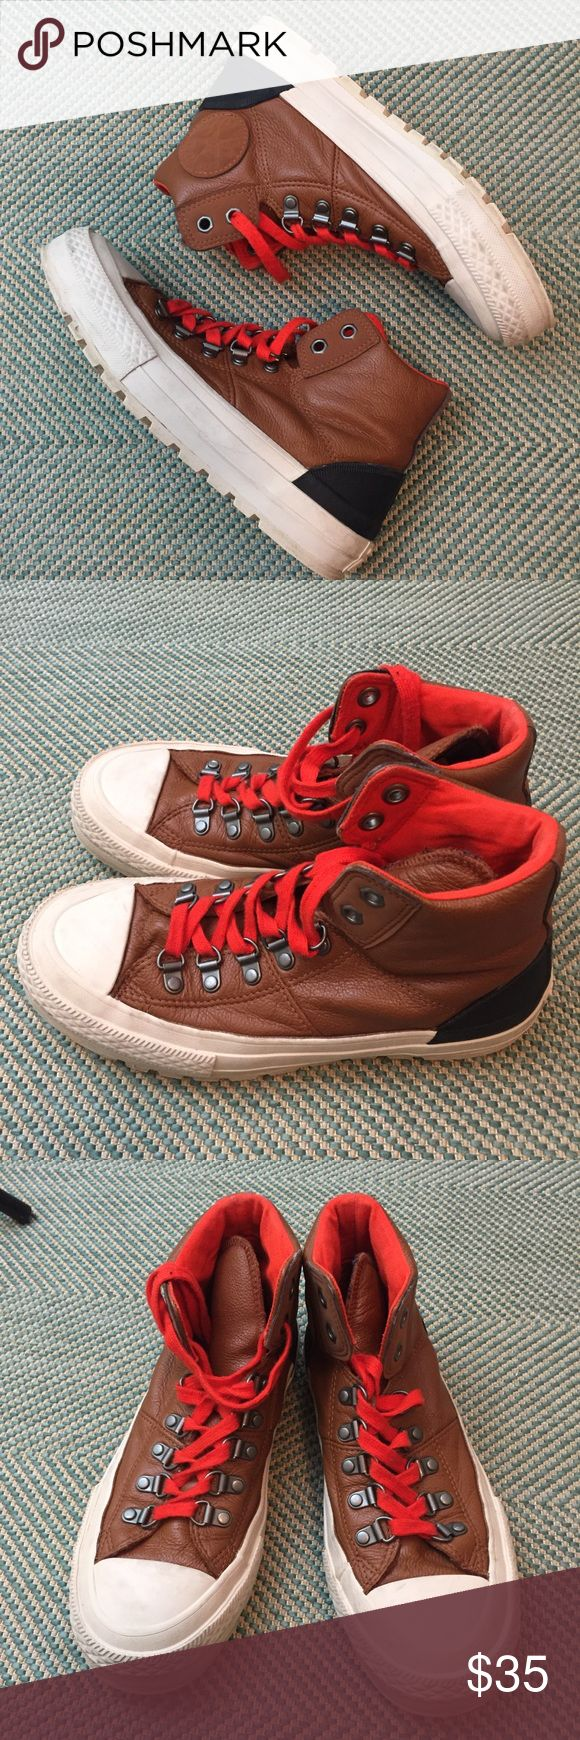 Converse Hiking Style High Top Leather Shoes 7.5 Brown leather Converse high tops with cream soles, black rubber heels, orange lining and orange laces. Women's 7.5. In good condition with minor signs of wear. Converse Shoes Sneakers